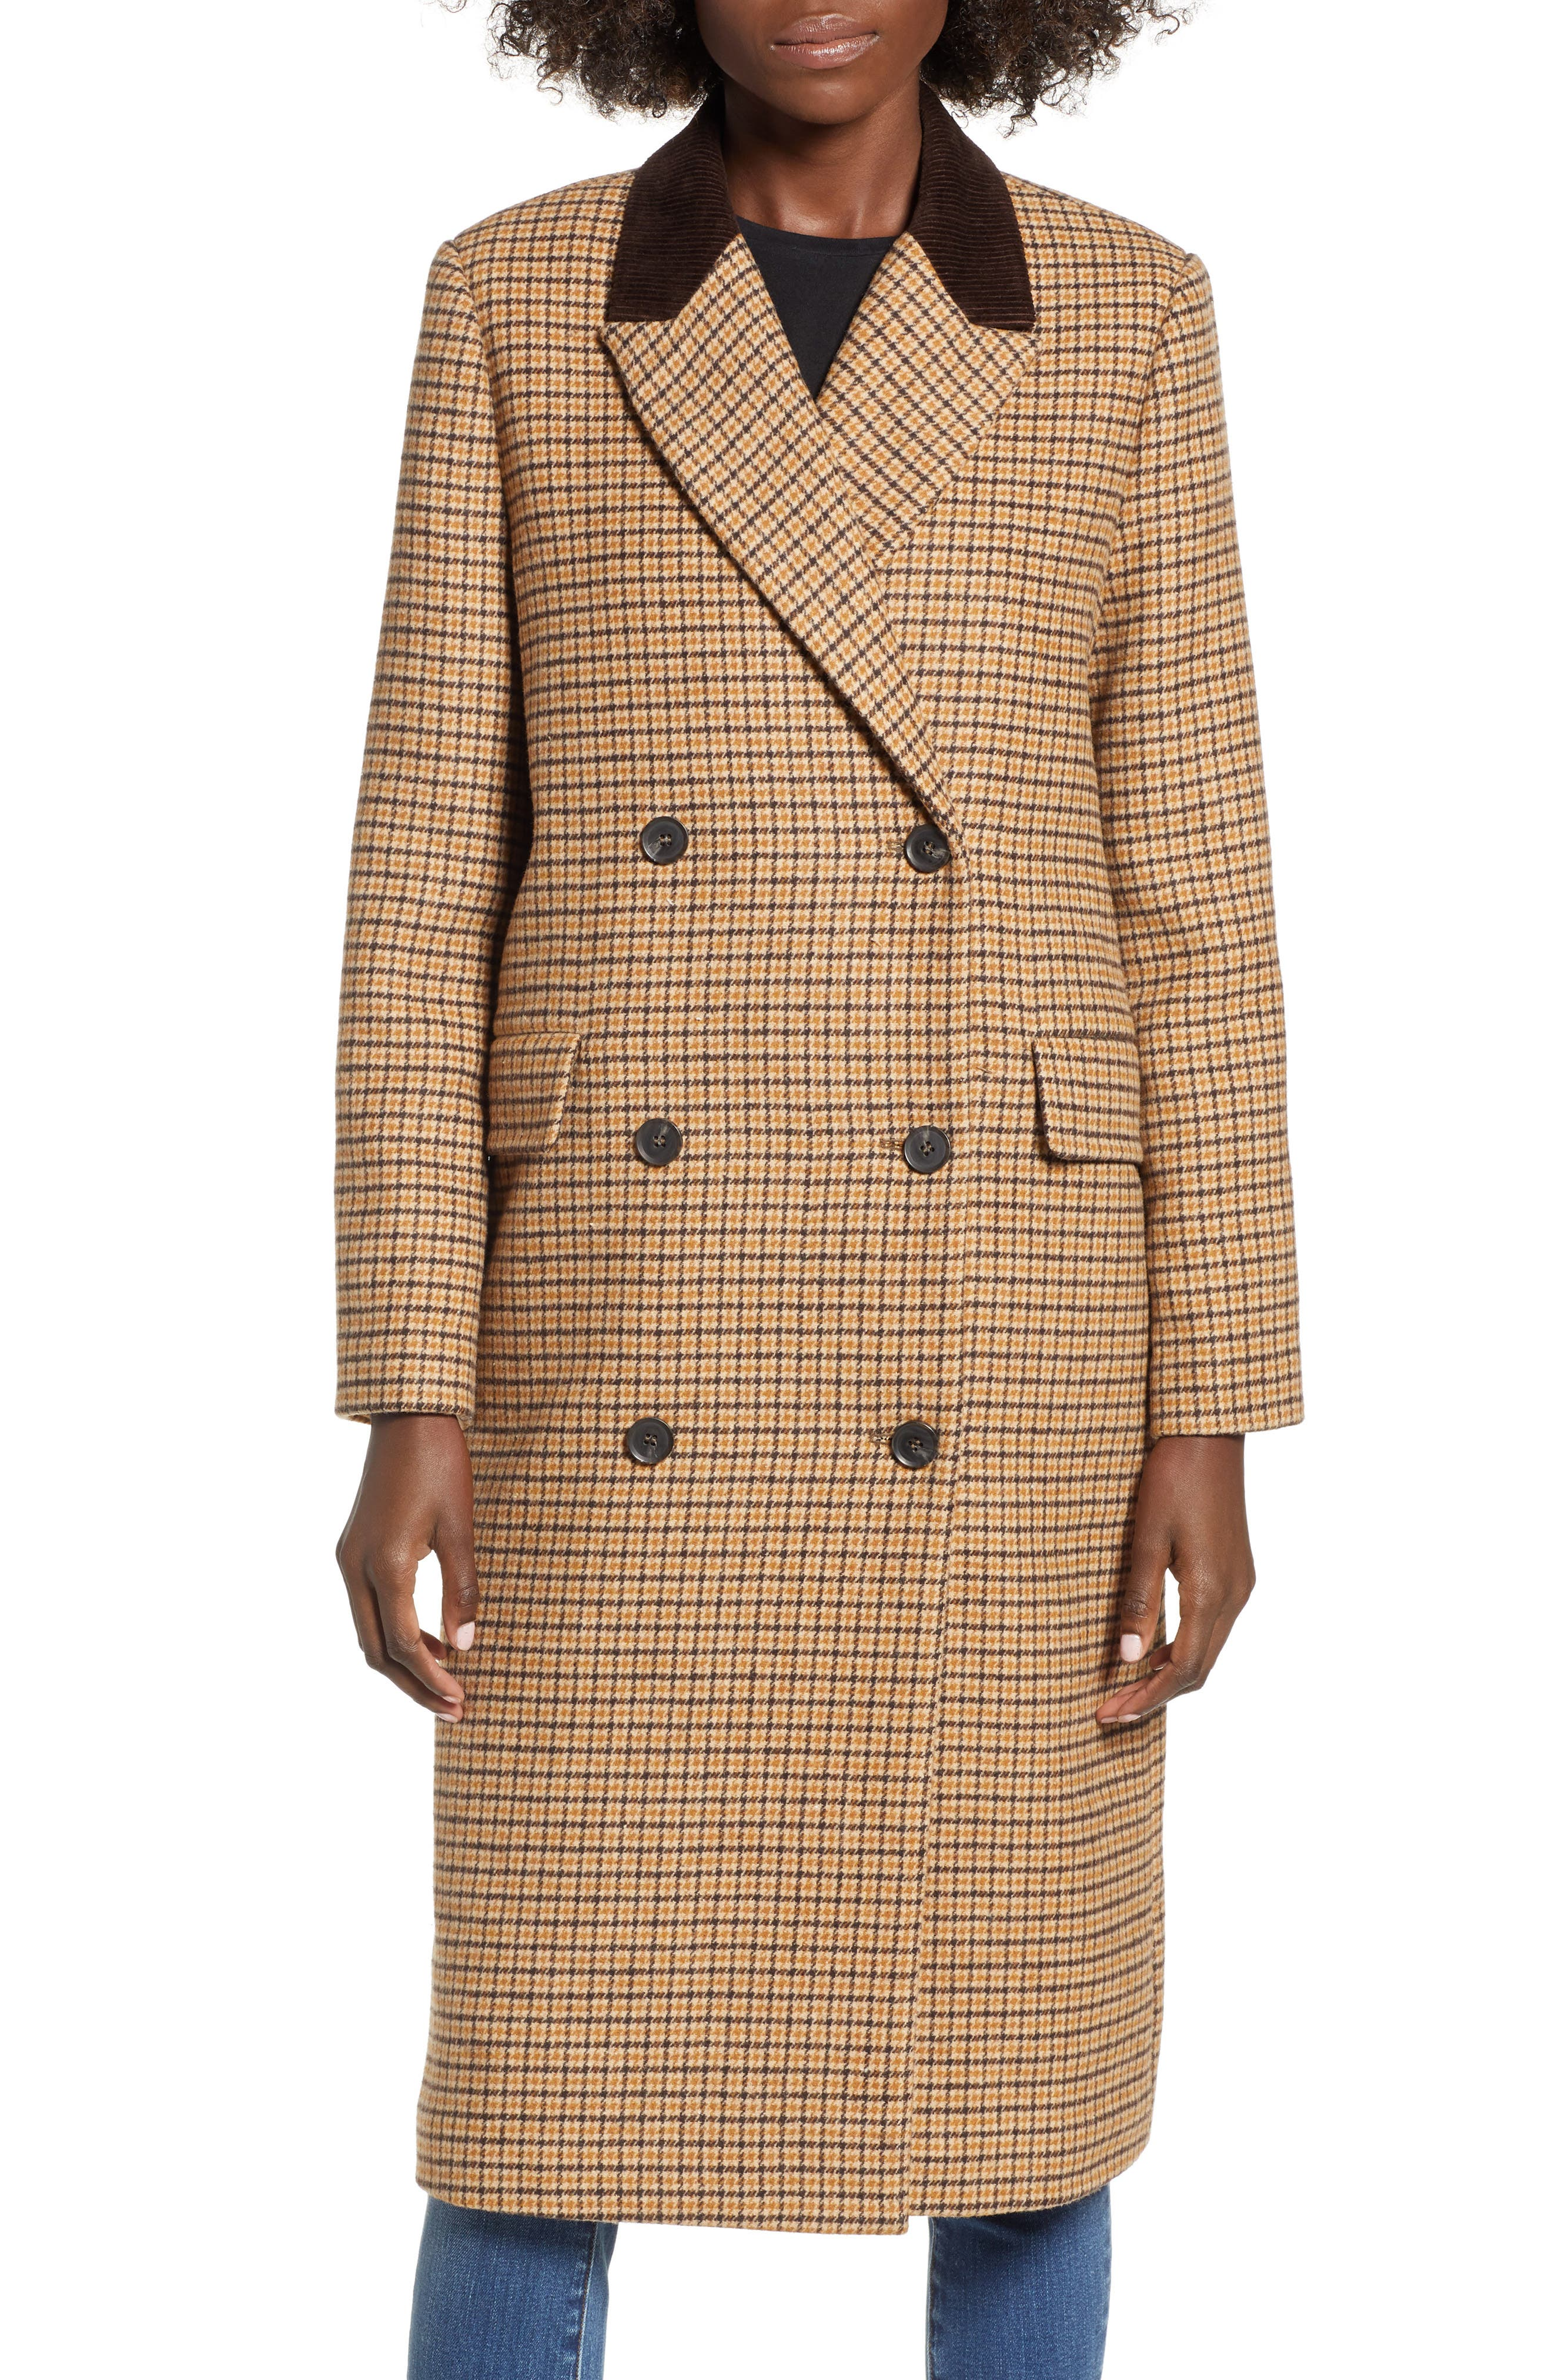 MOON RIVER,                             Houndstooth Double Breasted COat,                             Alternate thumbnail 4, color,                             BROWN PLAID